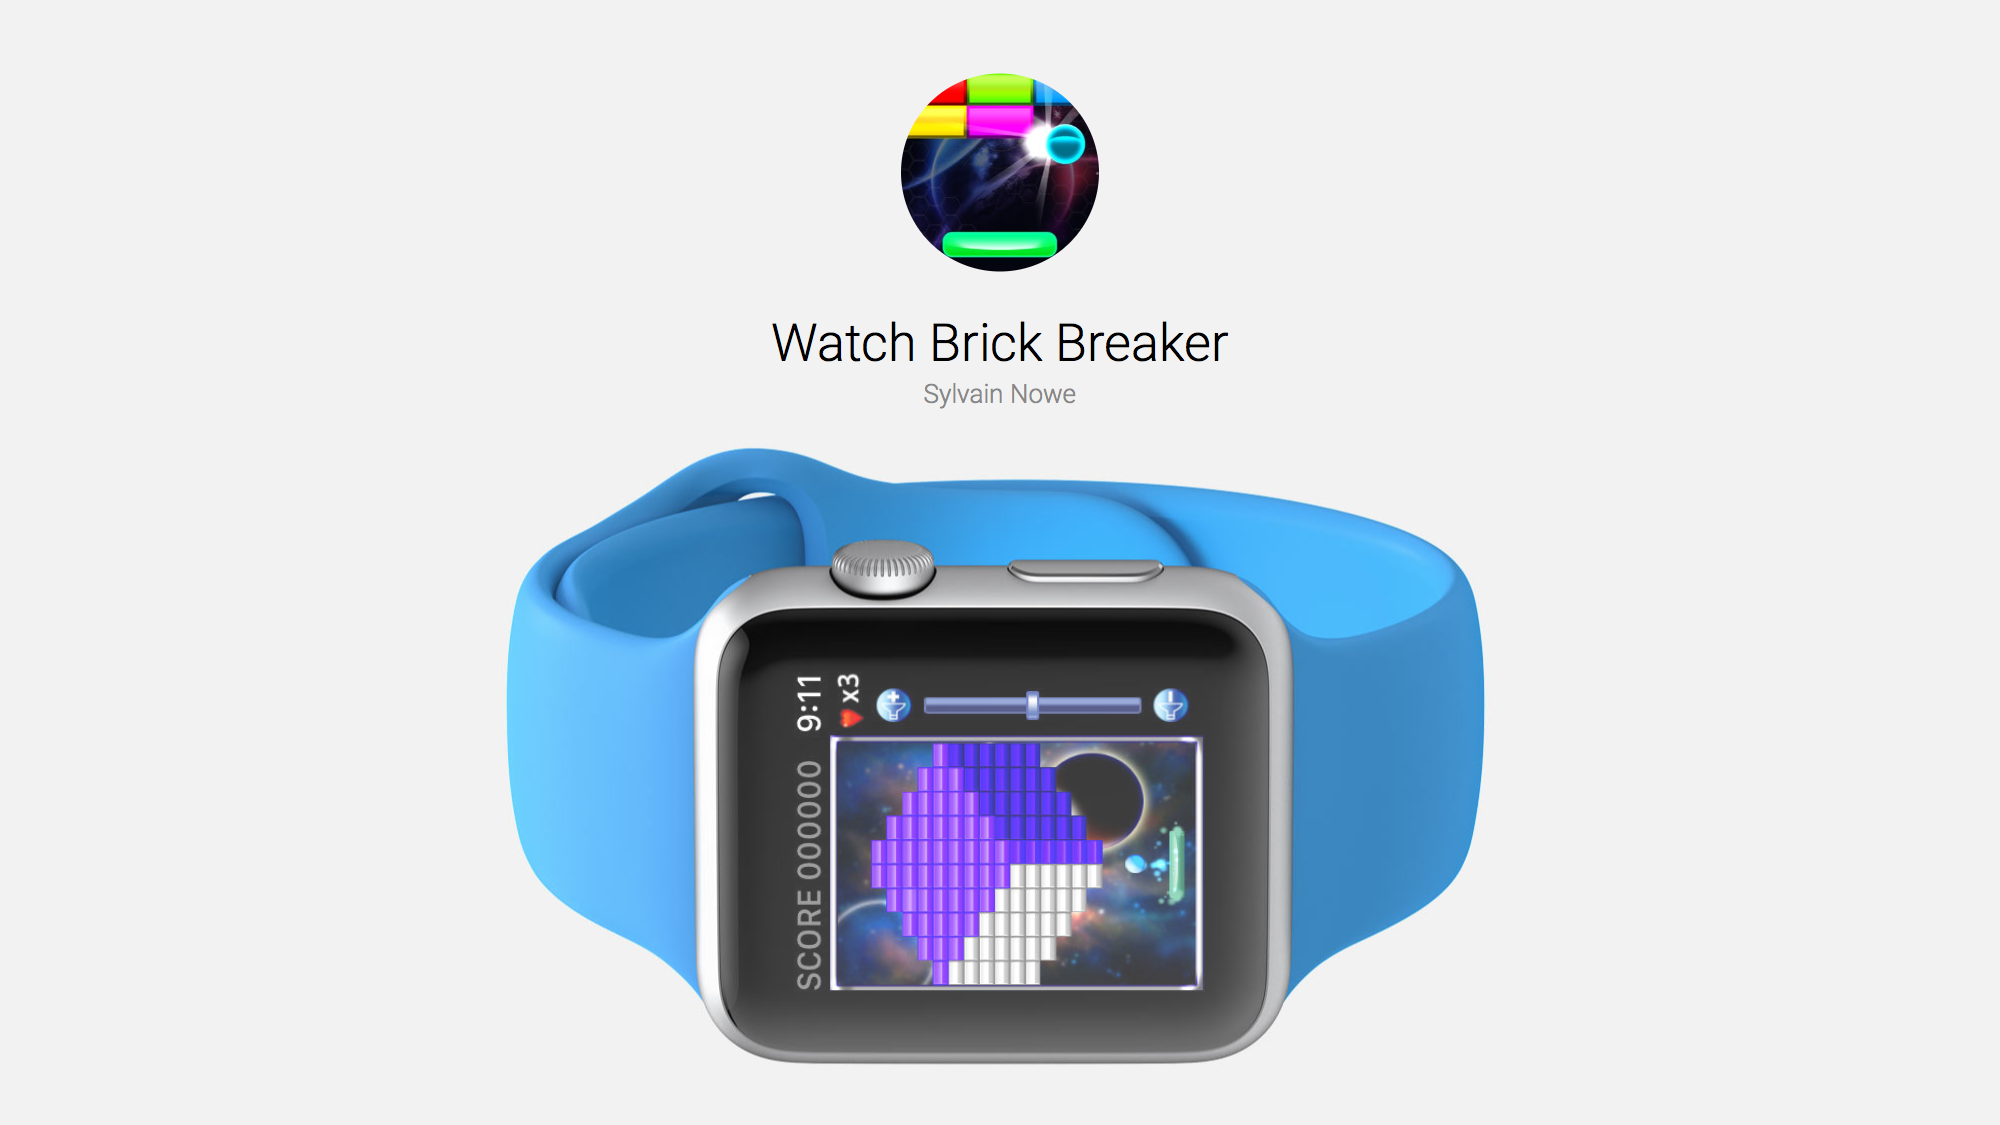 Watch Brick Breaker is a Simple Apple Watch Game